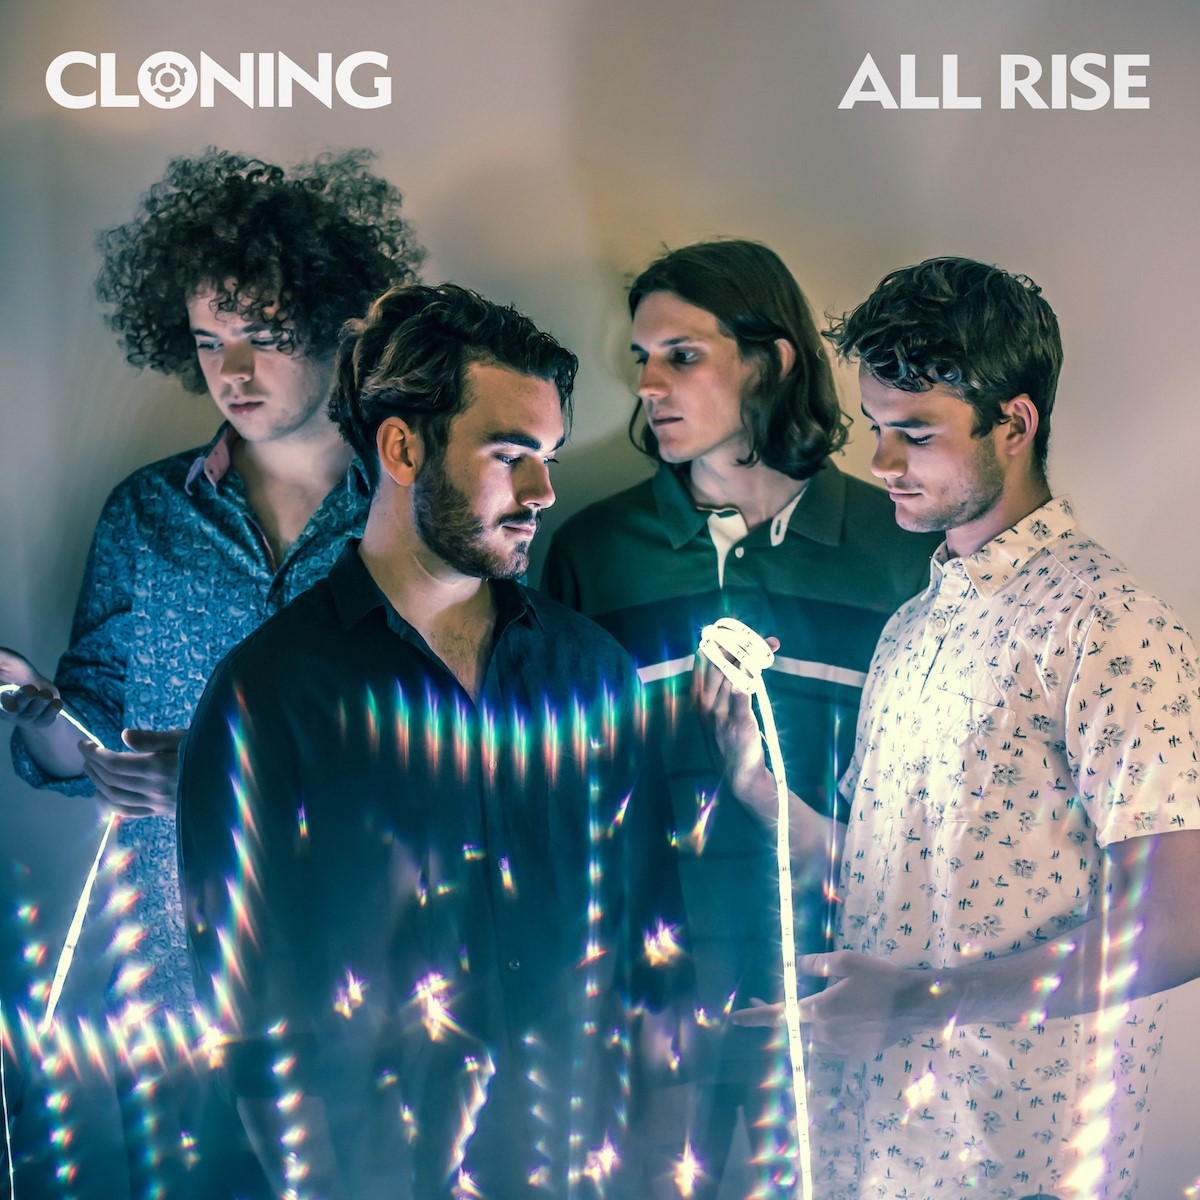 INTERVIEW WITH CLONING PERTHS' HOTTEST NEW EXPORTS